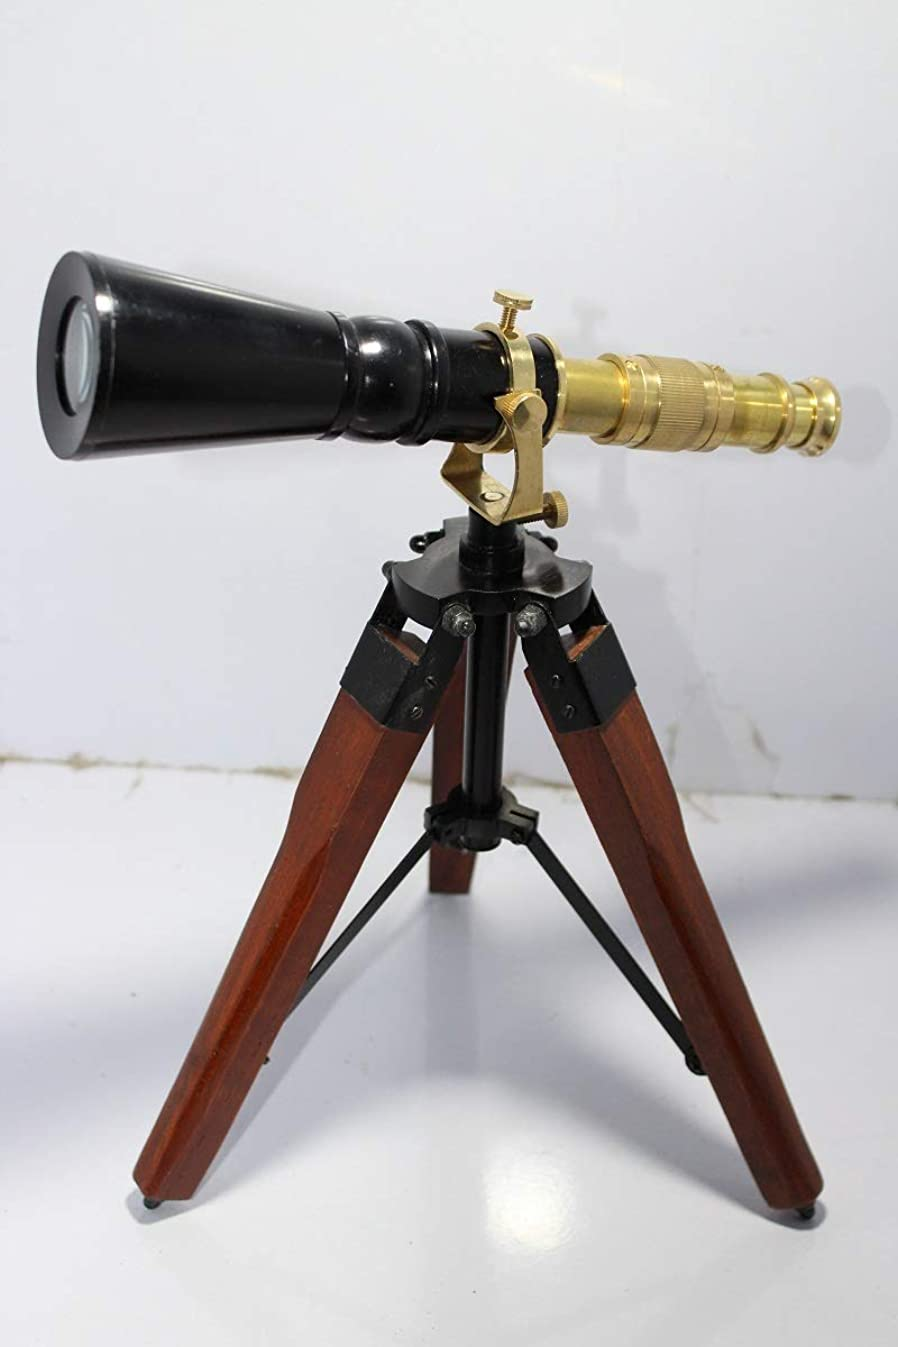 US HANDICRAFTS Antique Brass Decorative Nautical Double Barrel Telescope with Brass Stand Antique Gift.